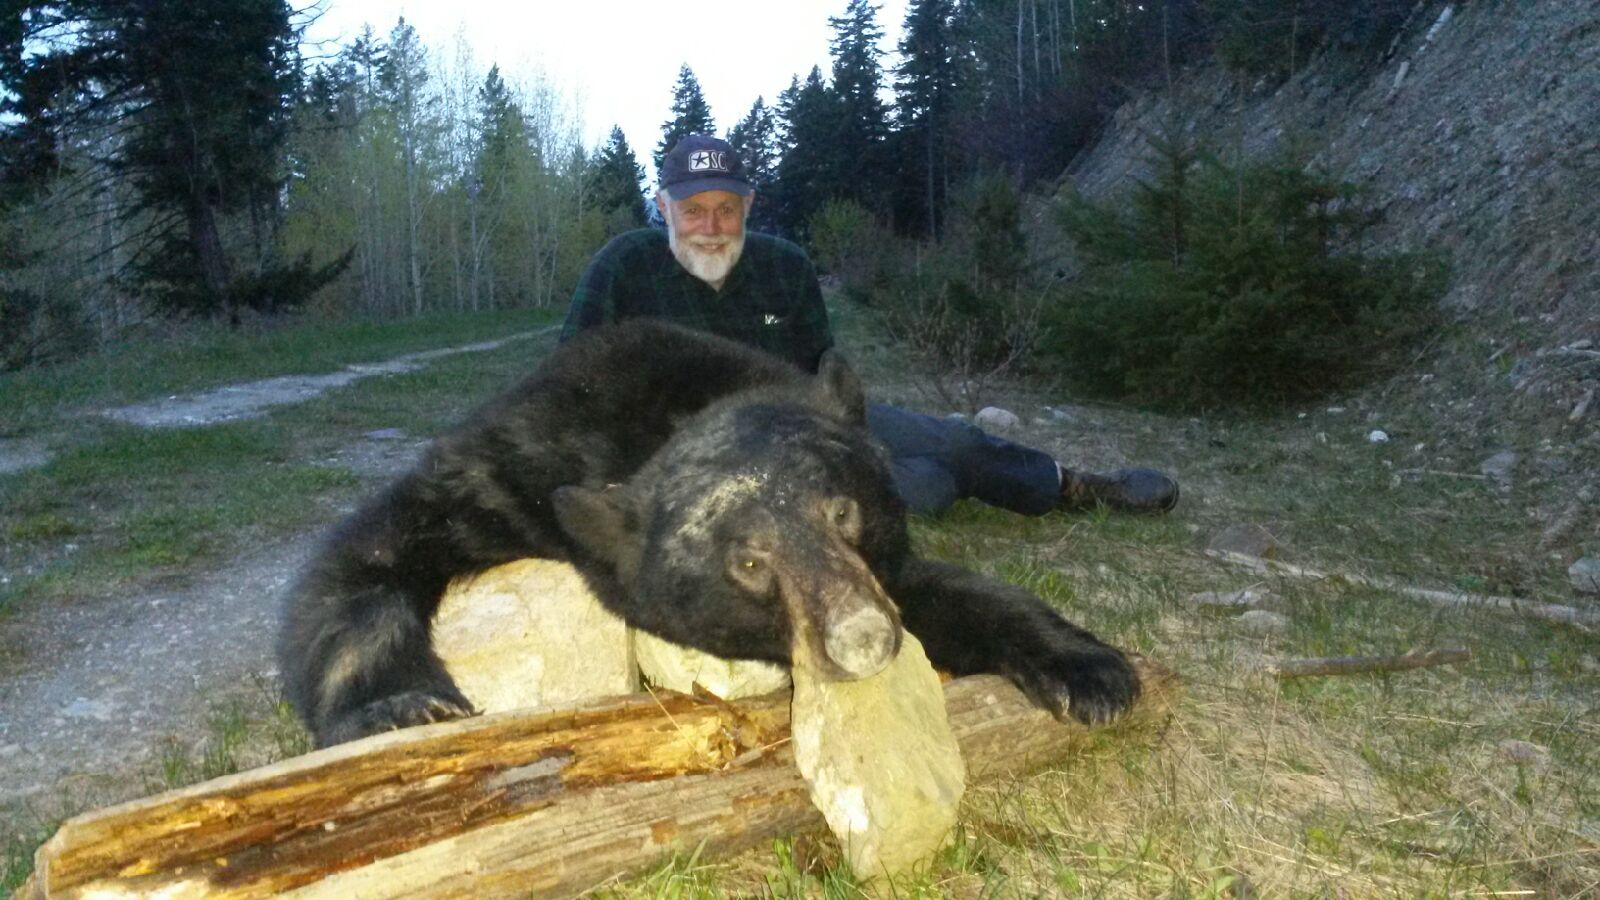 Pacific Bear Outfitters